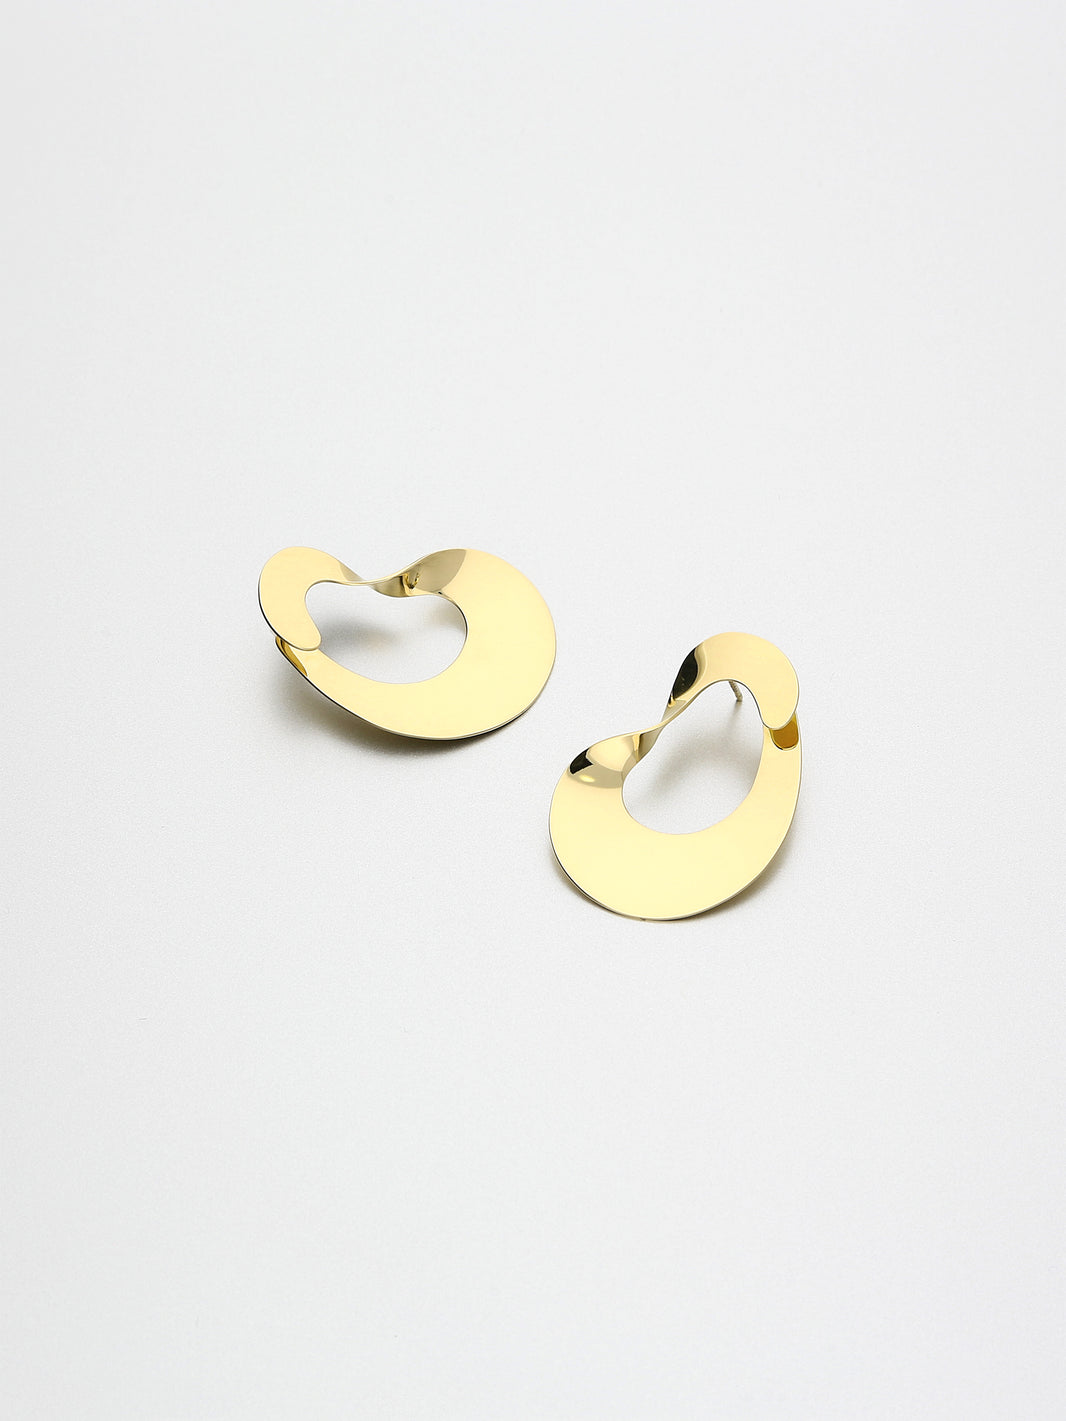 Moebius Earrings, II Yellow gold